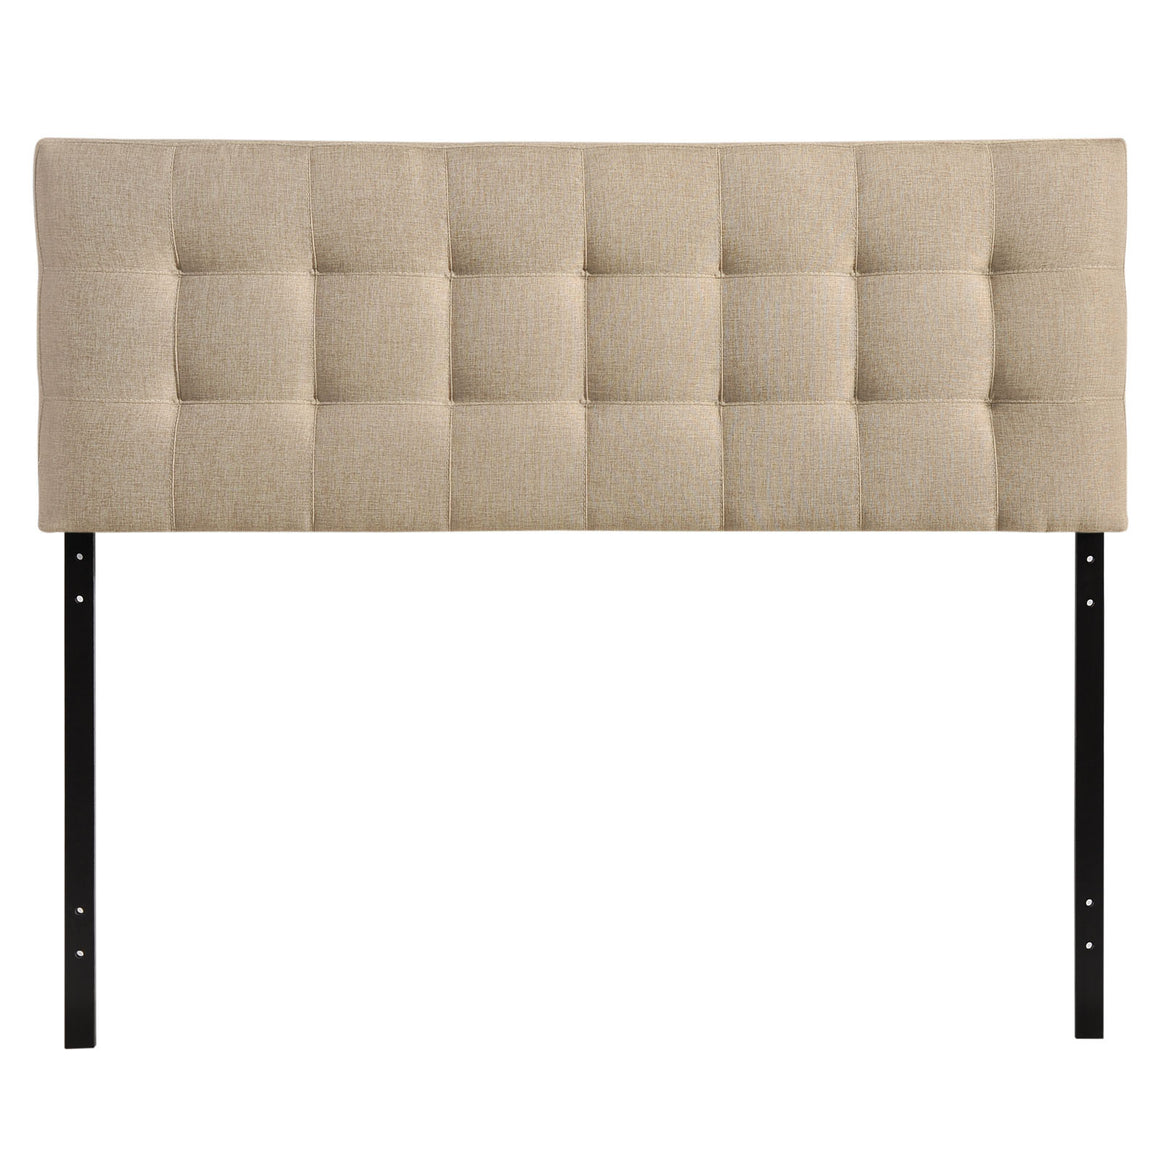 Lily King Fabric Headboard - taylor ray decor